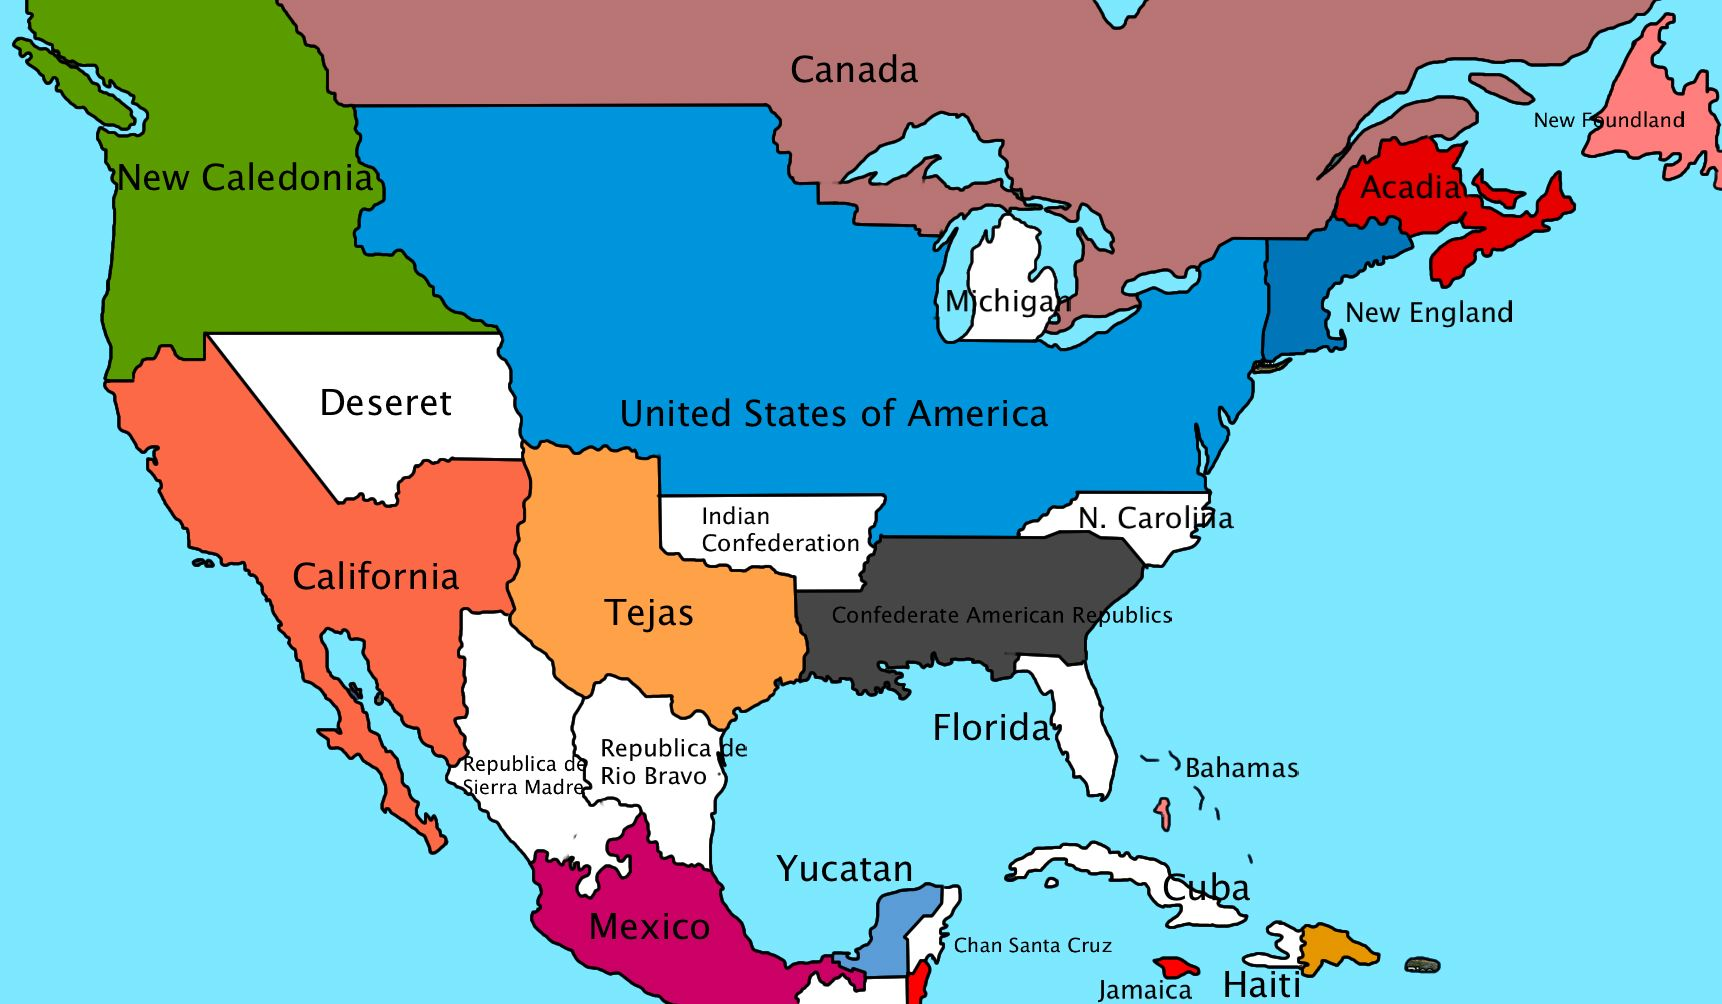 usa map with names of states with Ahc Balkanize The Us on Bfe main additionally Brenna Sparks as well Carte besides 22926218 likewise East african  munity member countries.